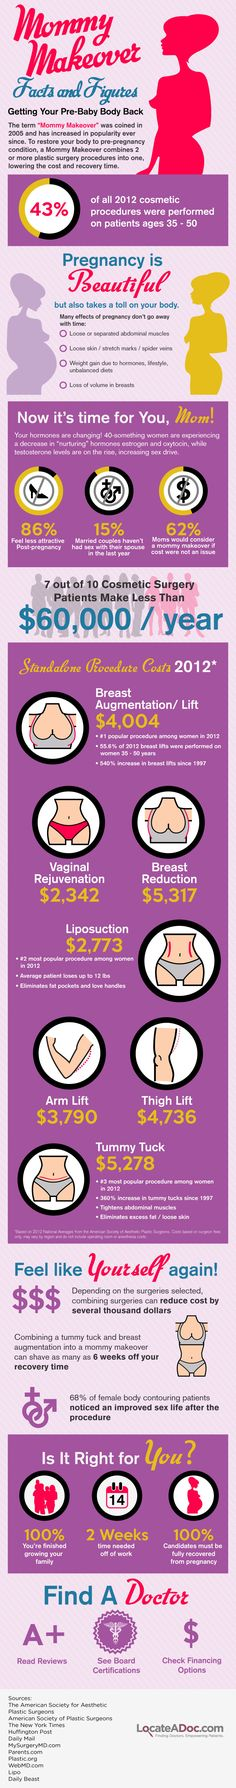 Mommy Makeover facts and figures #grandavenuesurgicalcenter